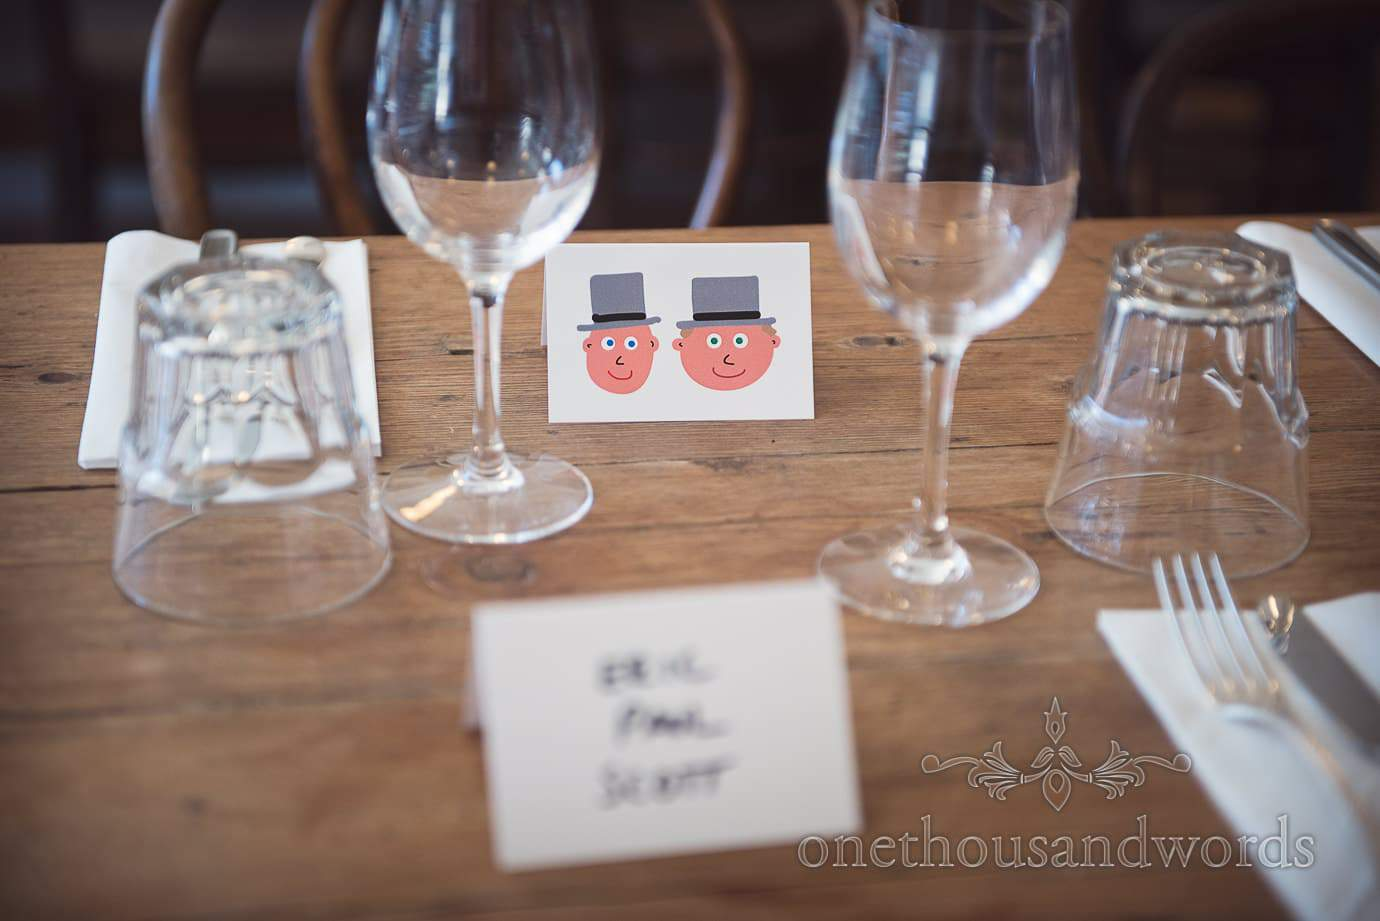 Pre-wedding meal table place name signs with cartoon grooms heads in top hats